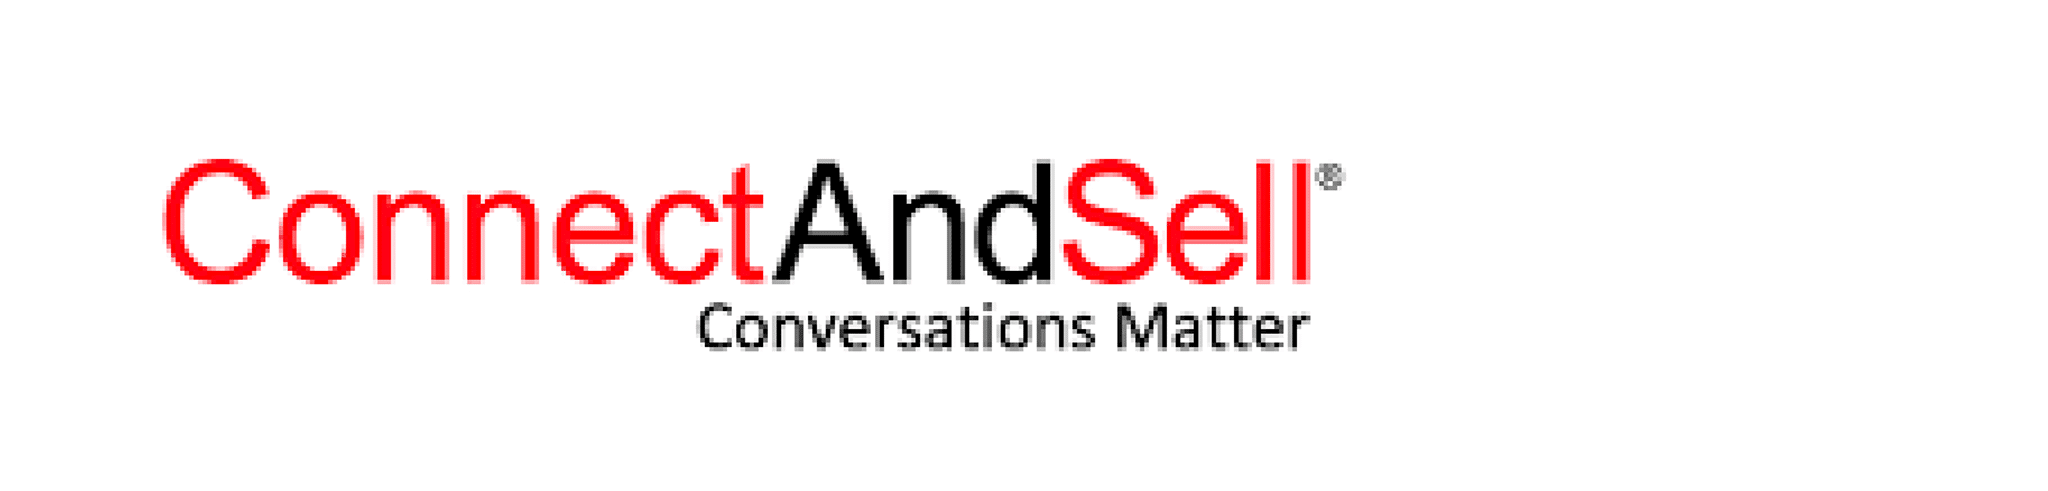 ConnectAndSell brand logo